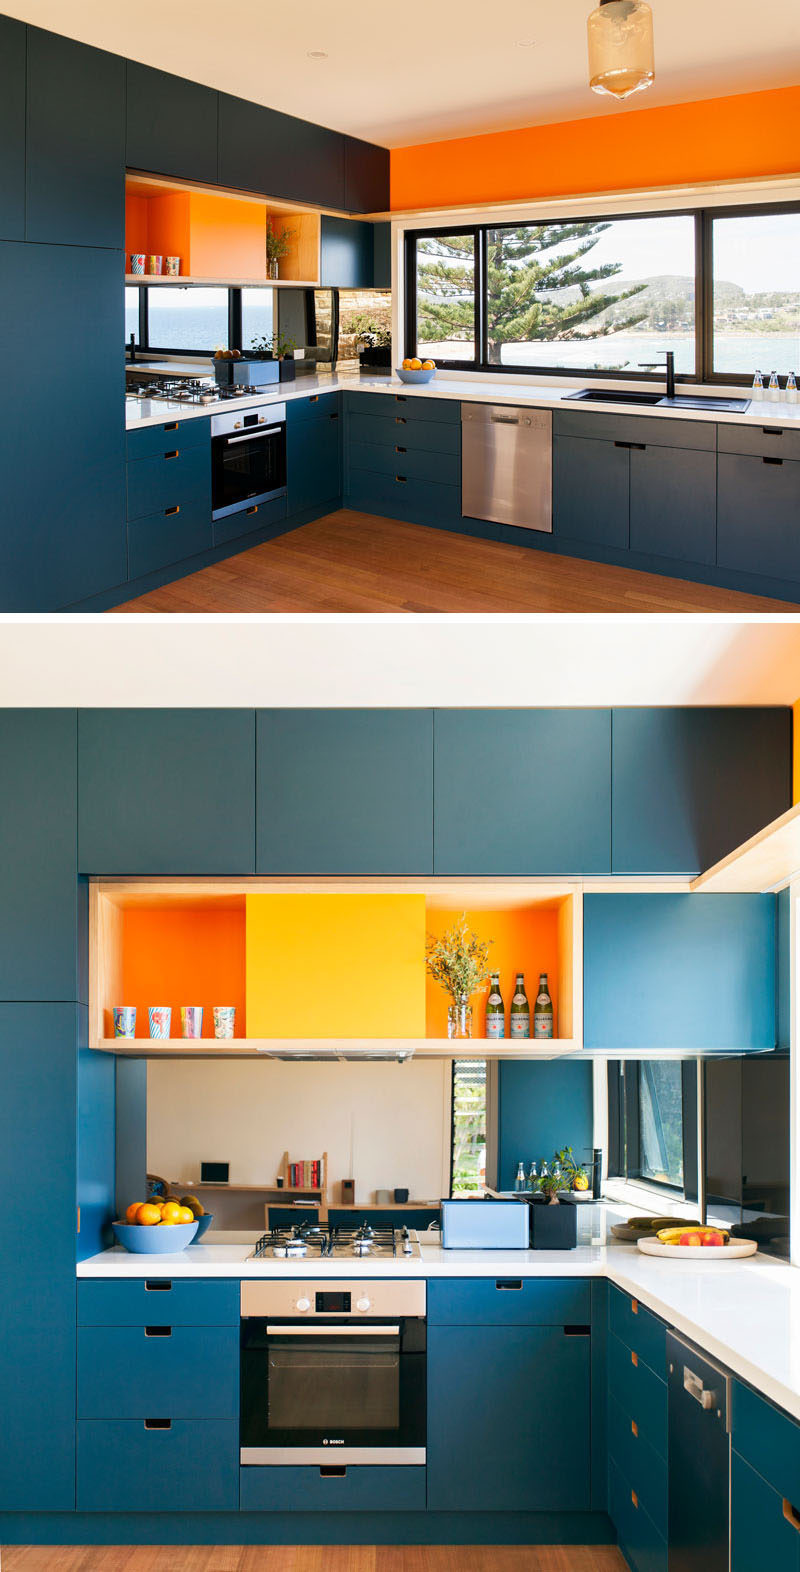 Kitchen Design Ideas - Deep Blue Kitchens // Orange and blue brighten up this kitchen and inject it with a touch of fun.